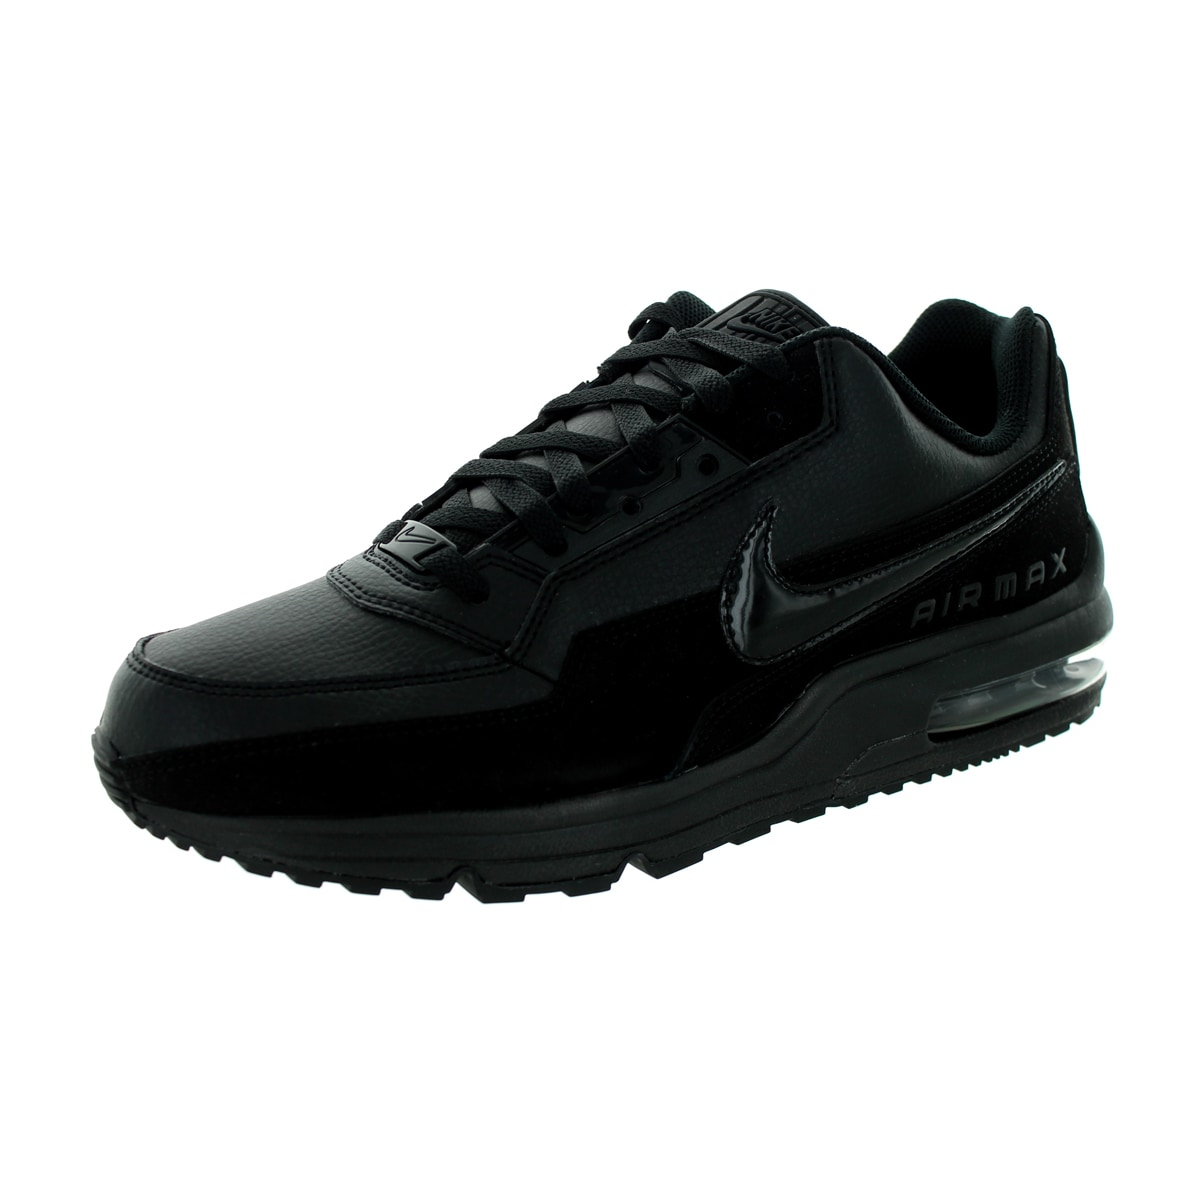 2a1e71d74 Shop Nike Men's Air Max LTD 3 Black/Black/Black Running Shoe (Size 12) -  Free Shipping Today - Overstock - 13395067